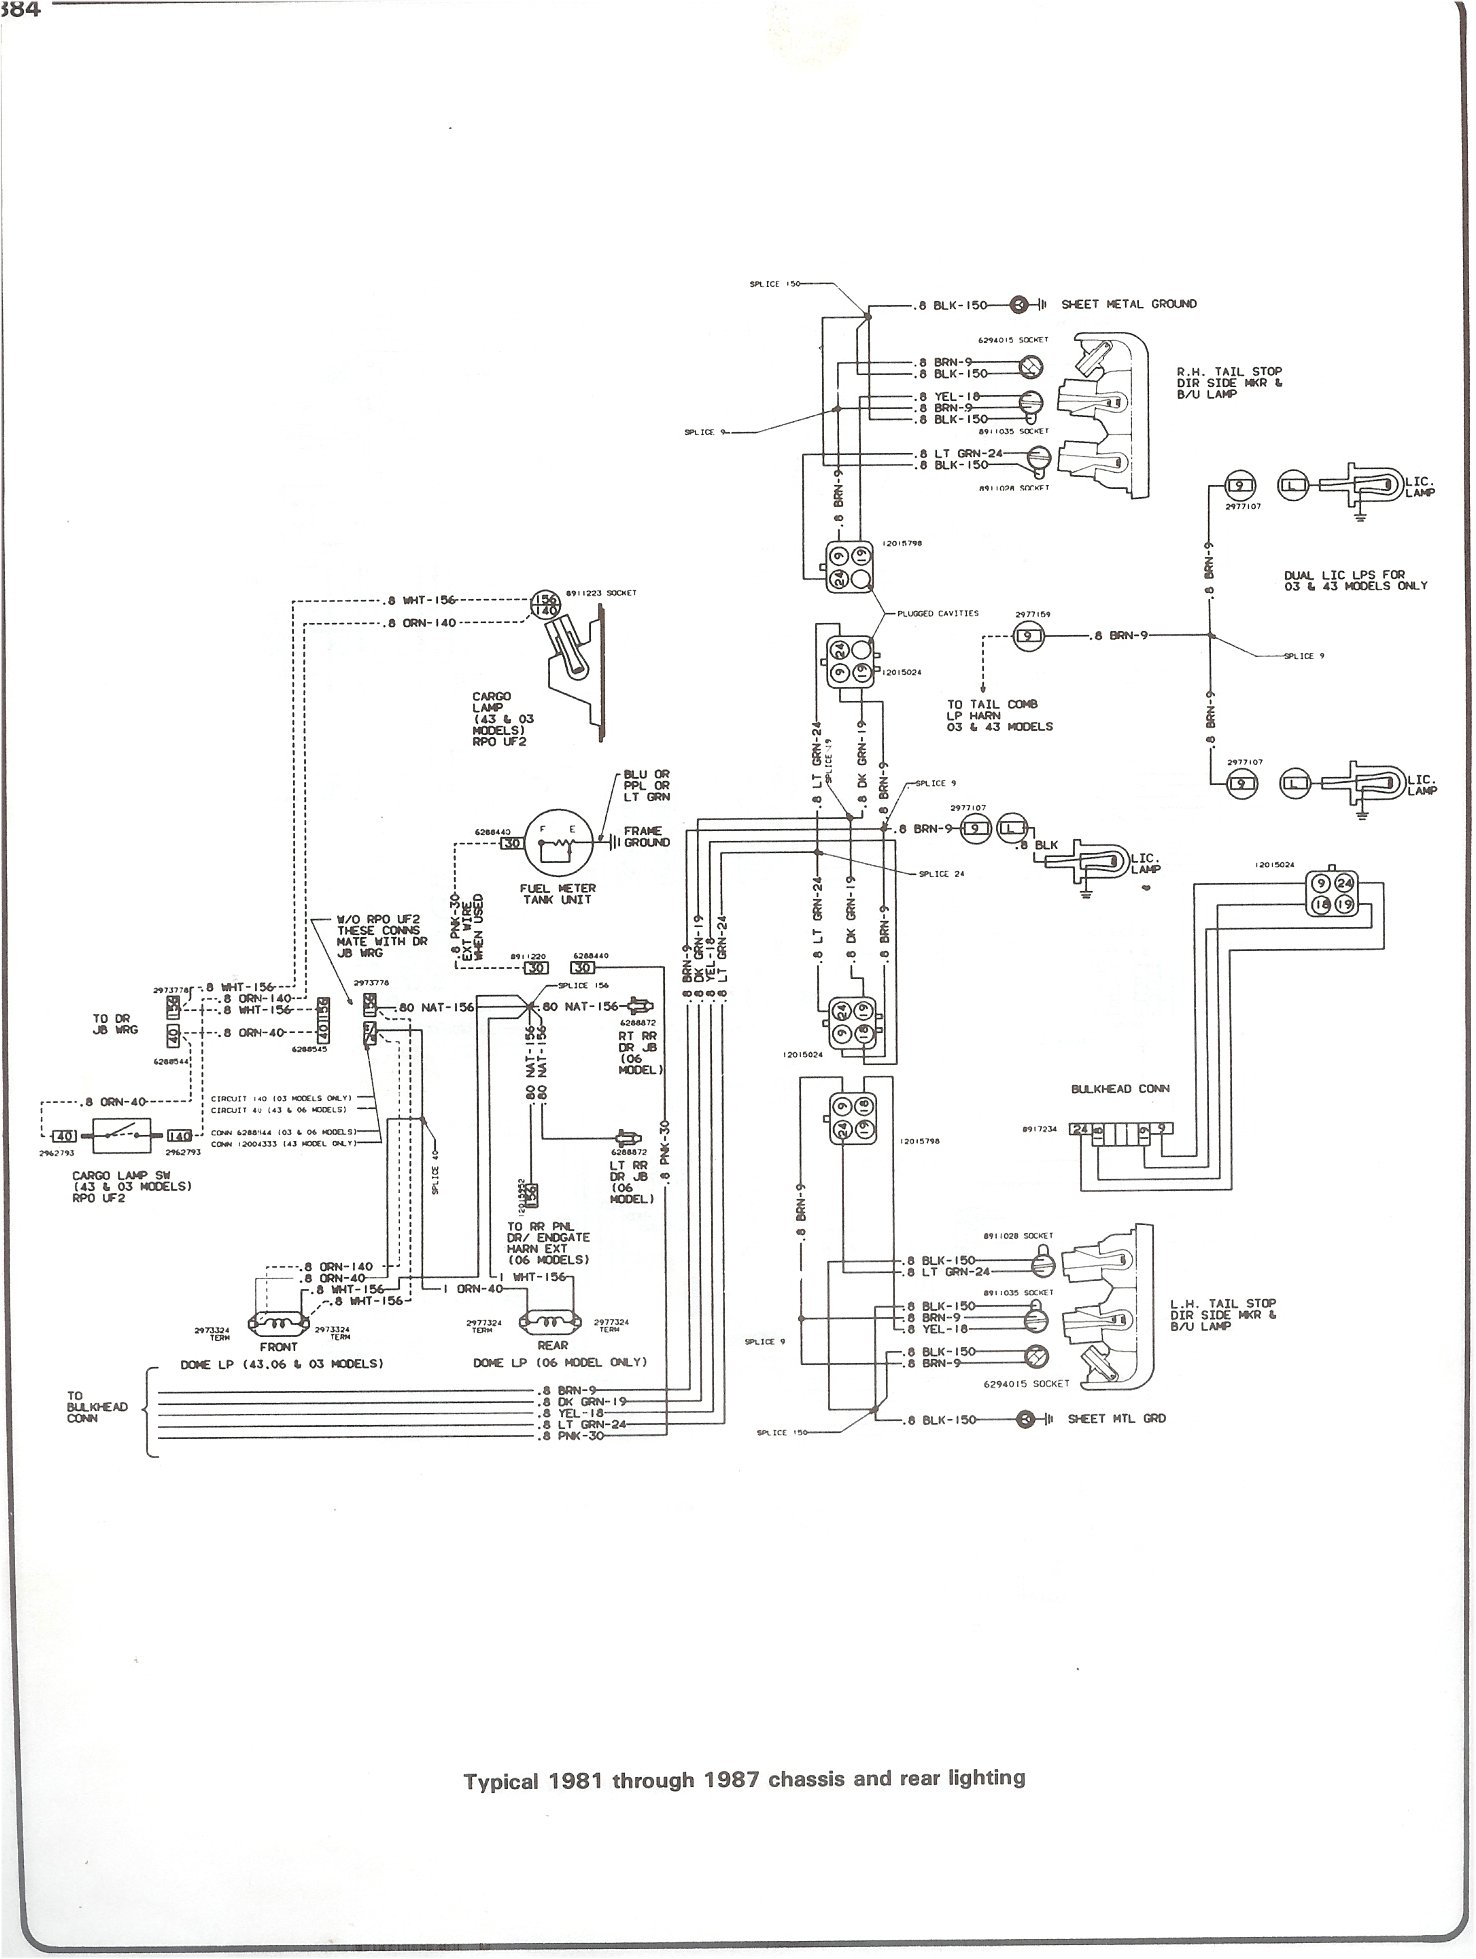 complete 73 87 wiring diagrams rh forum 73 87chevytrucks com 1970 GMC Truck Wiring Diagram GMC Sierra Stereo Wiring Diagram